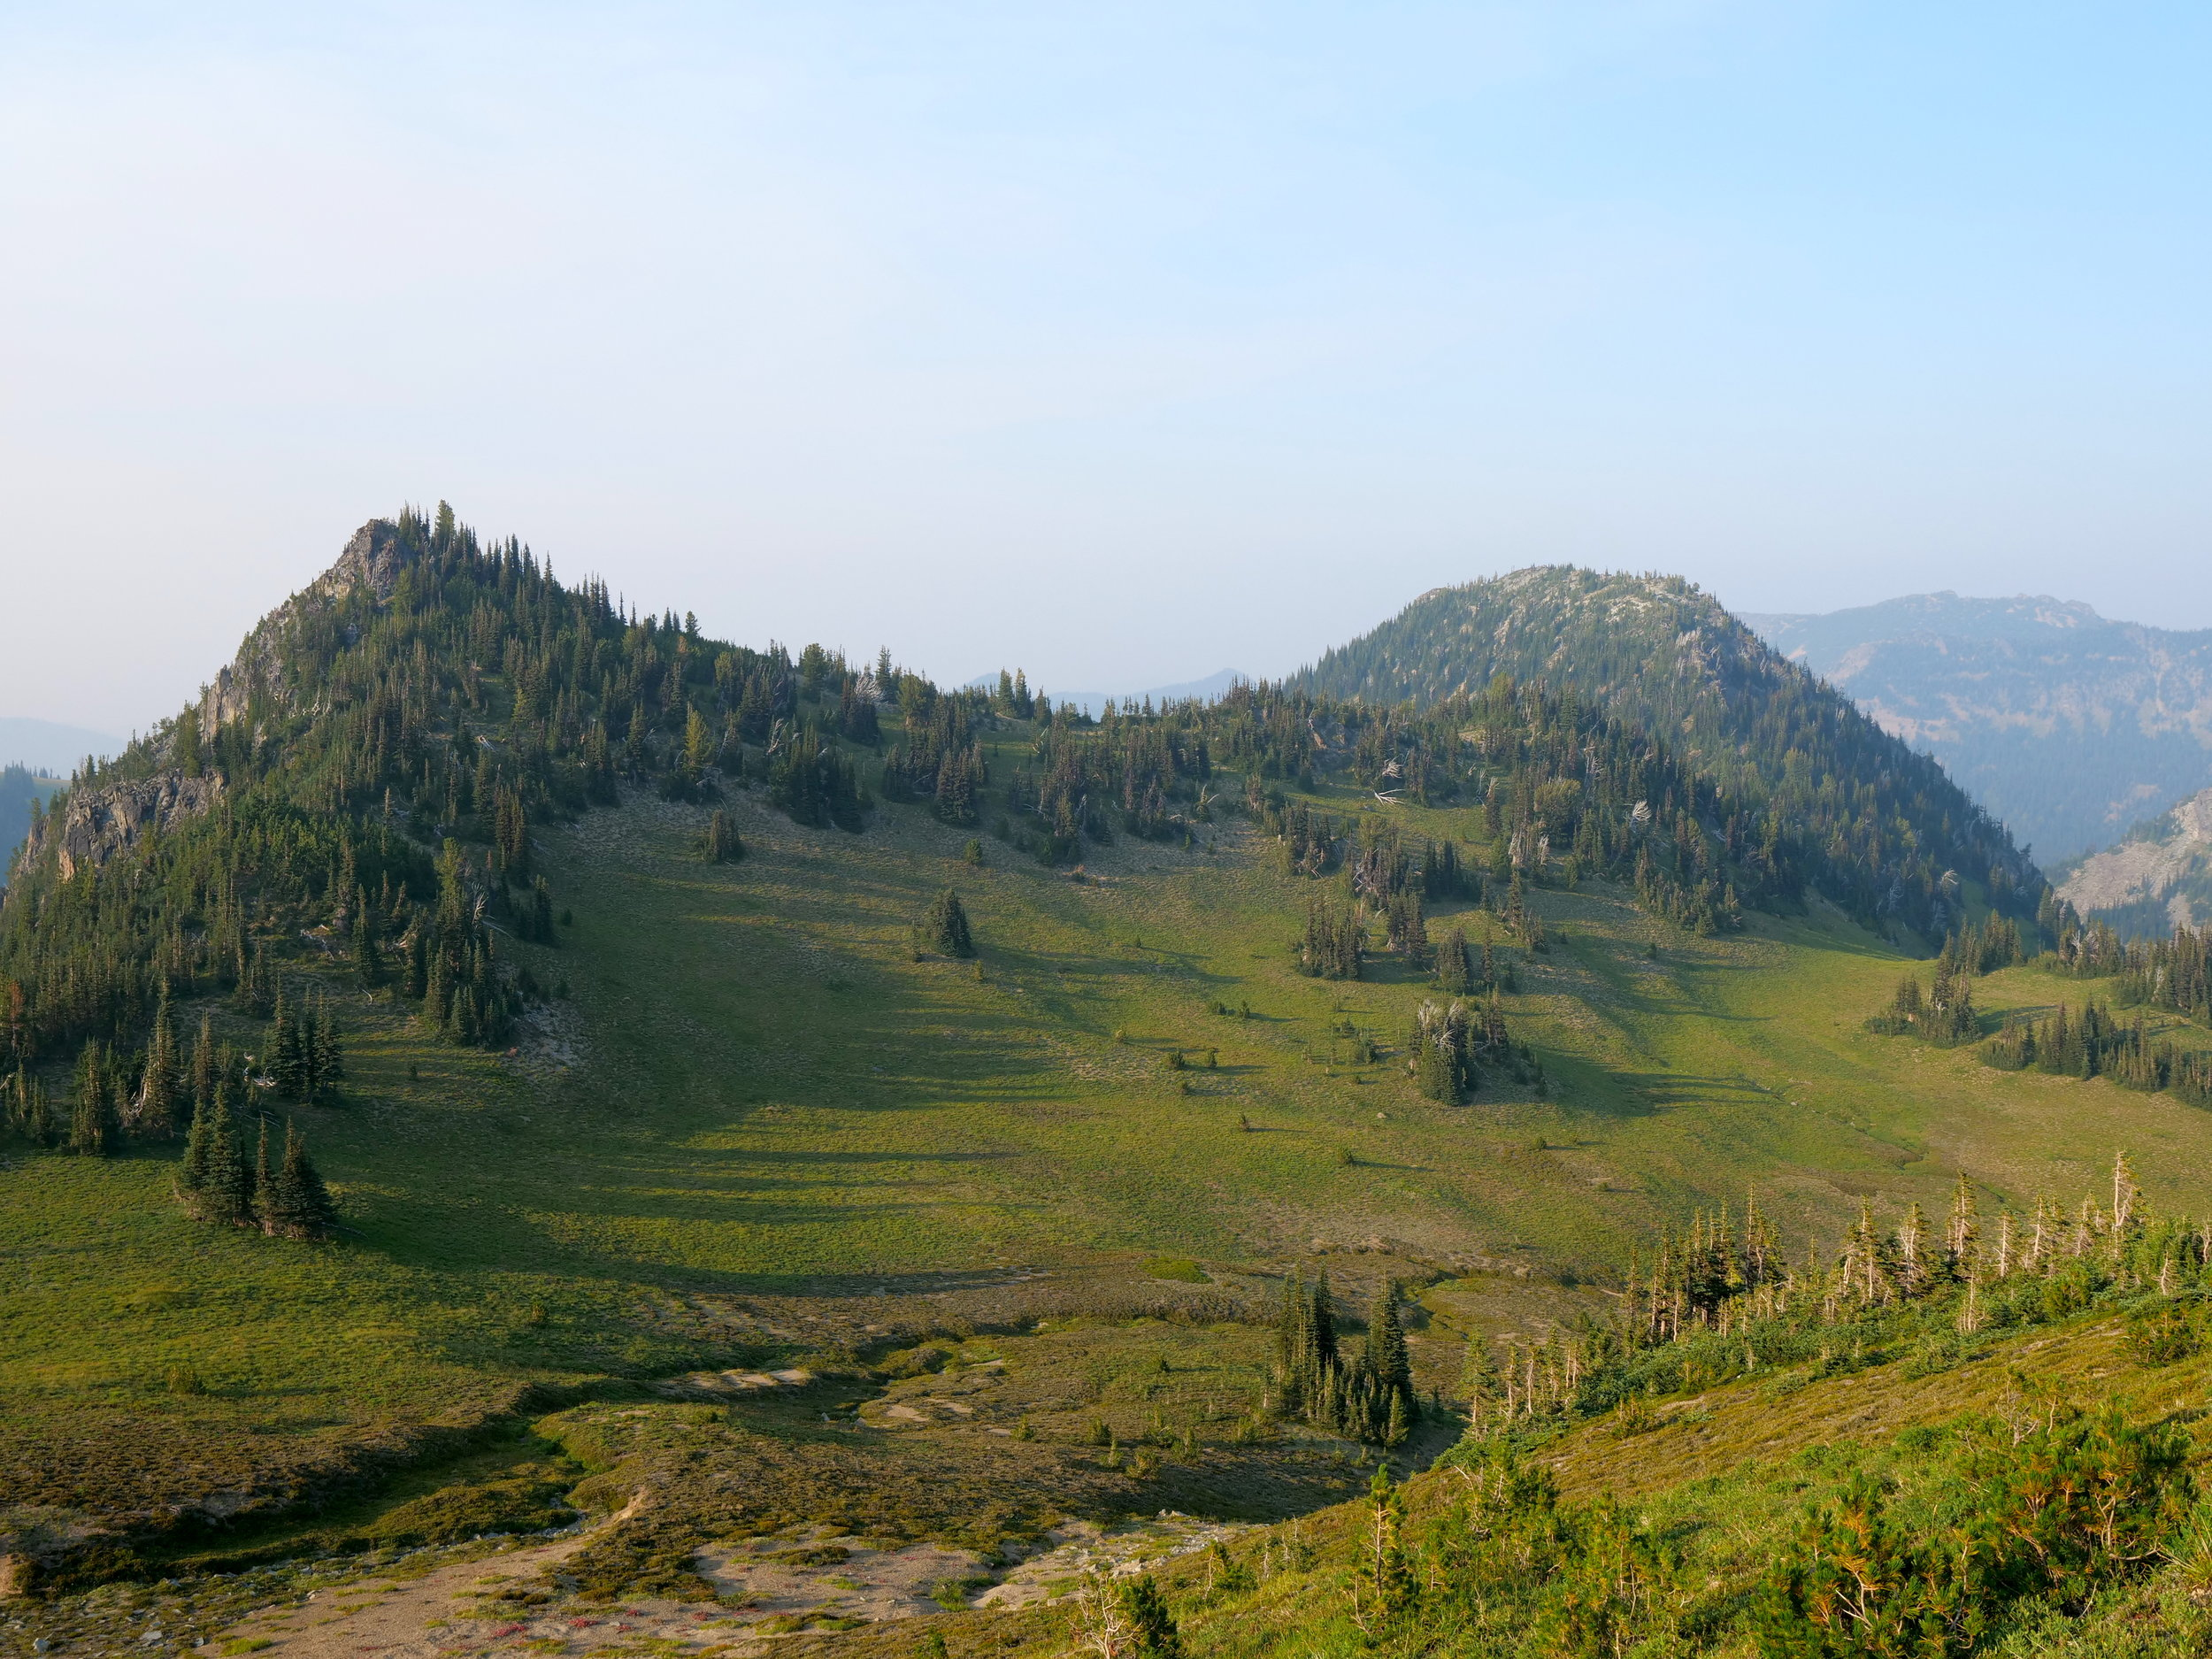 The meadow transited to access the ridge to McNeeley Peak (6786'), right frame